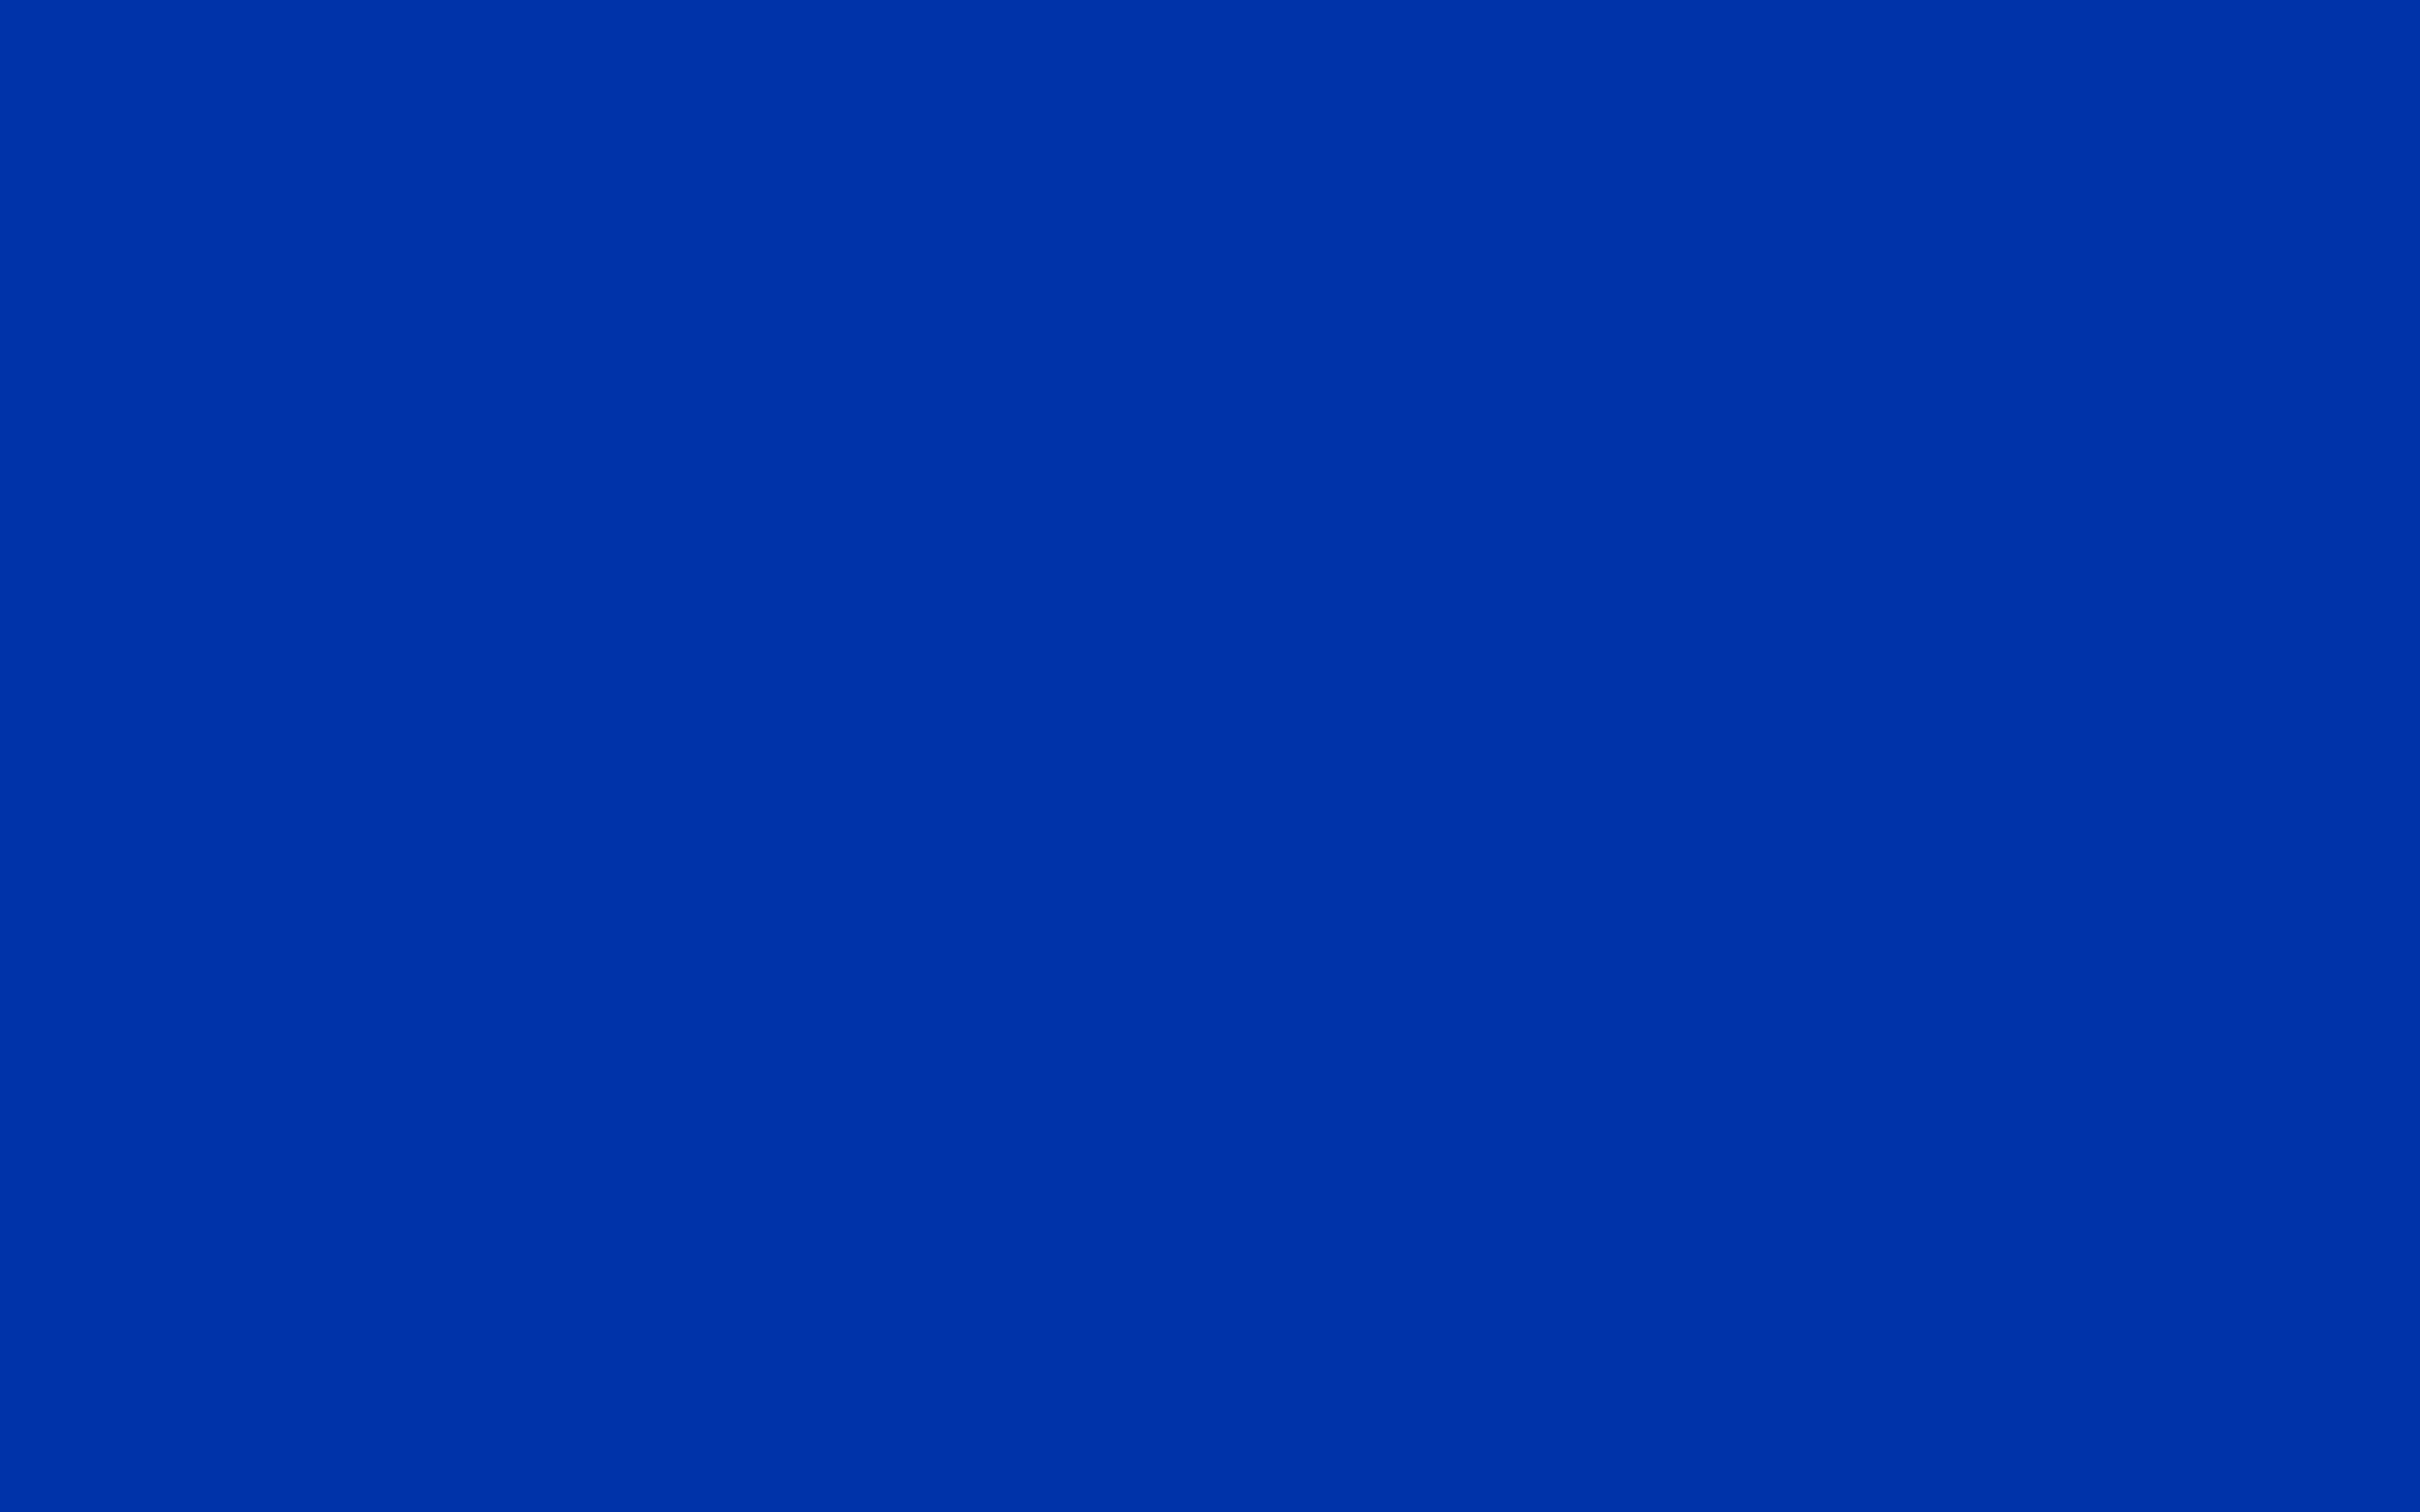 2560x1600 UA Blue Solid Color Background